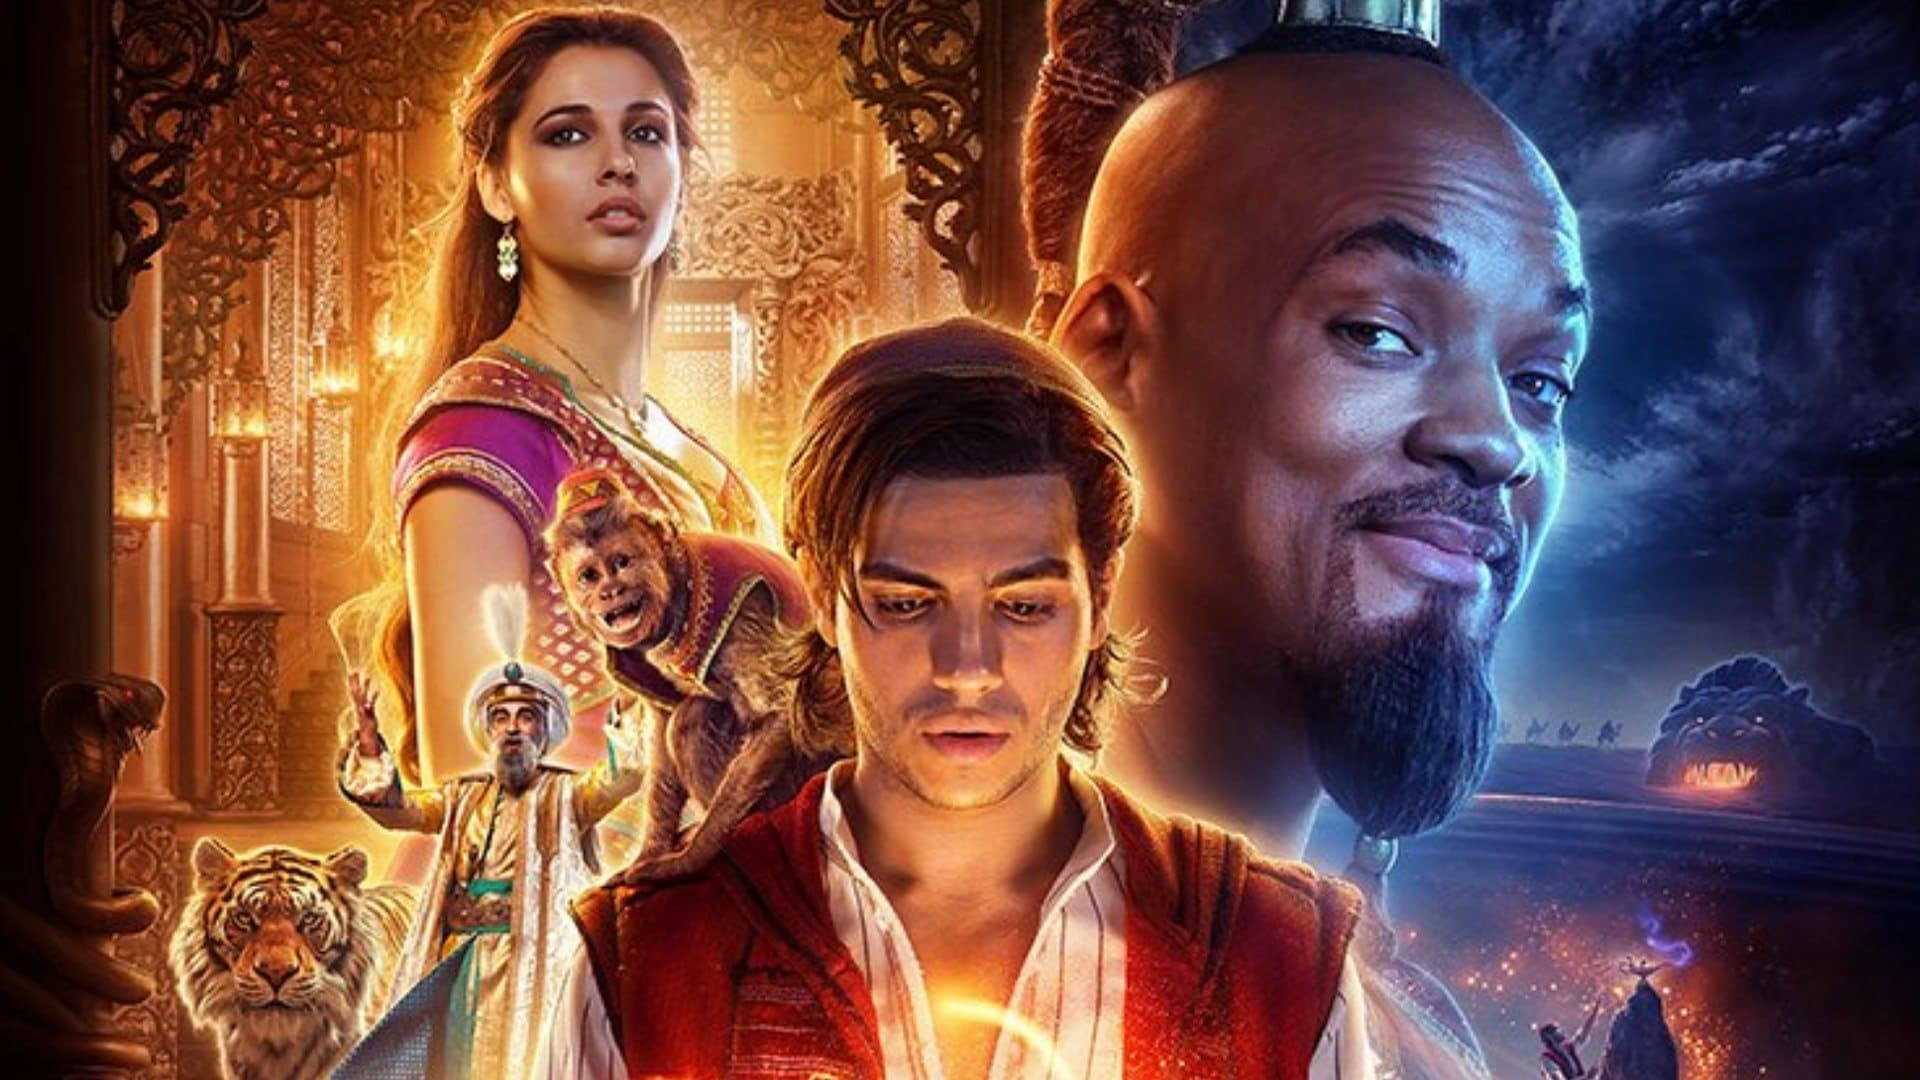 Aladdin 2 Officially Happening At Disney, Not Based On Animated Sequels